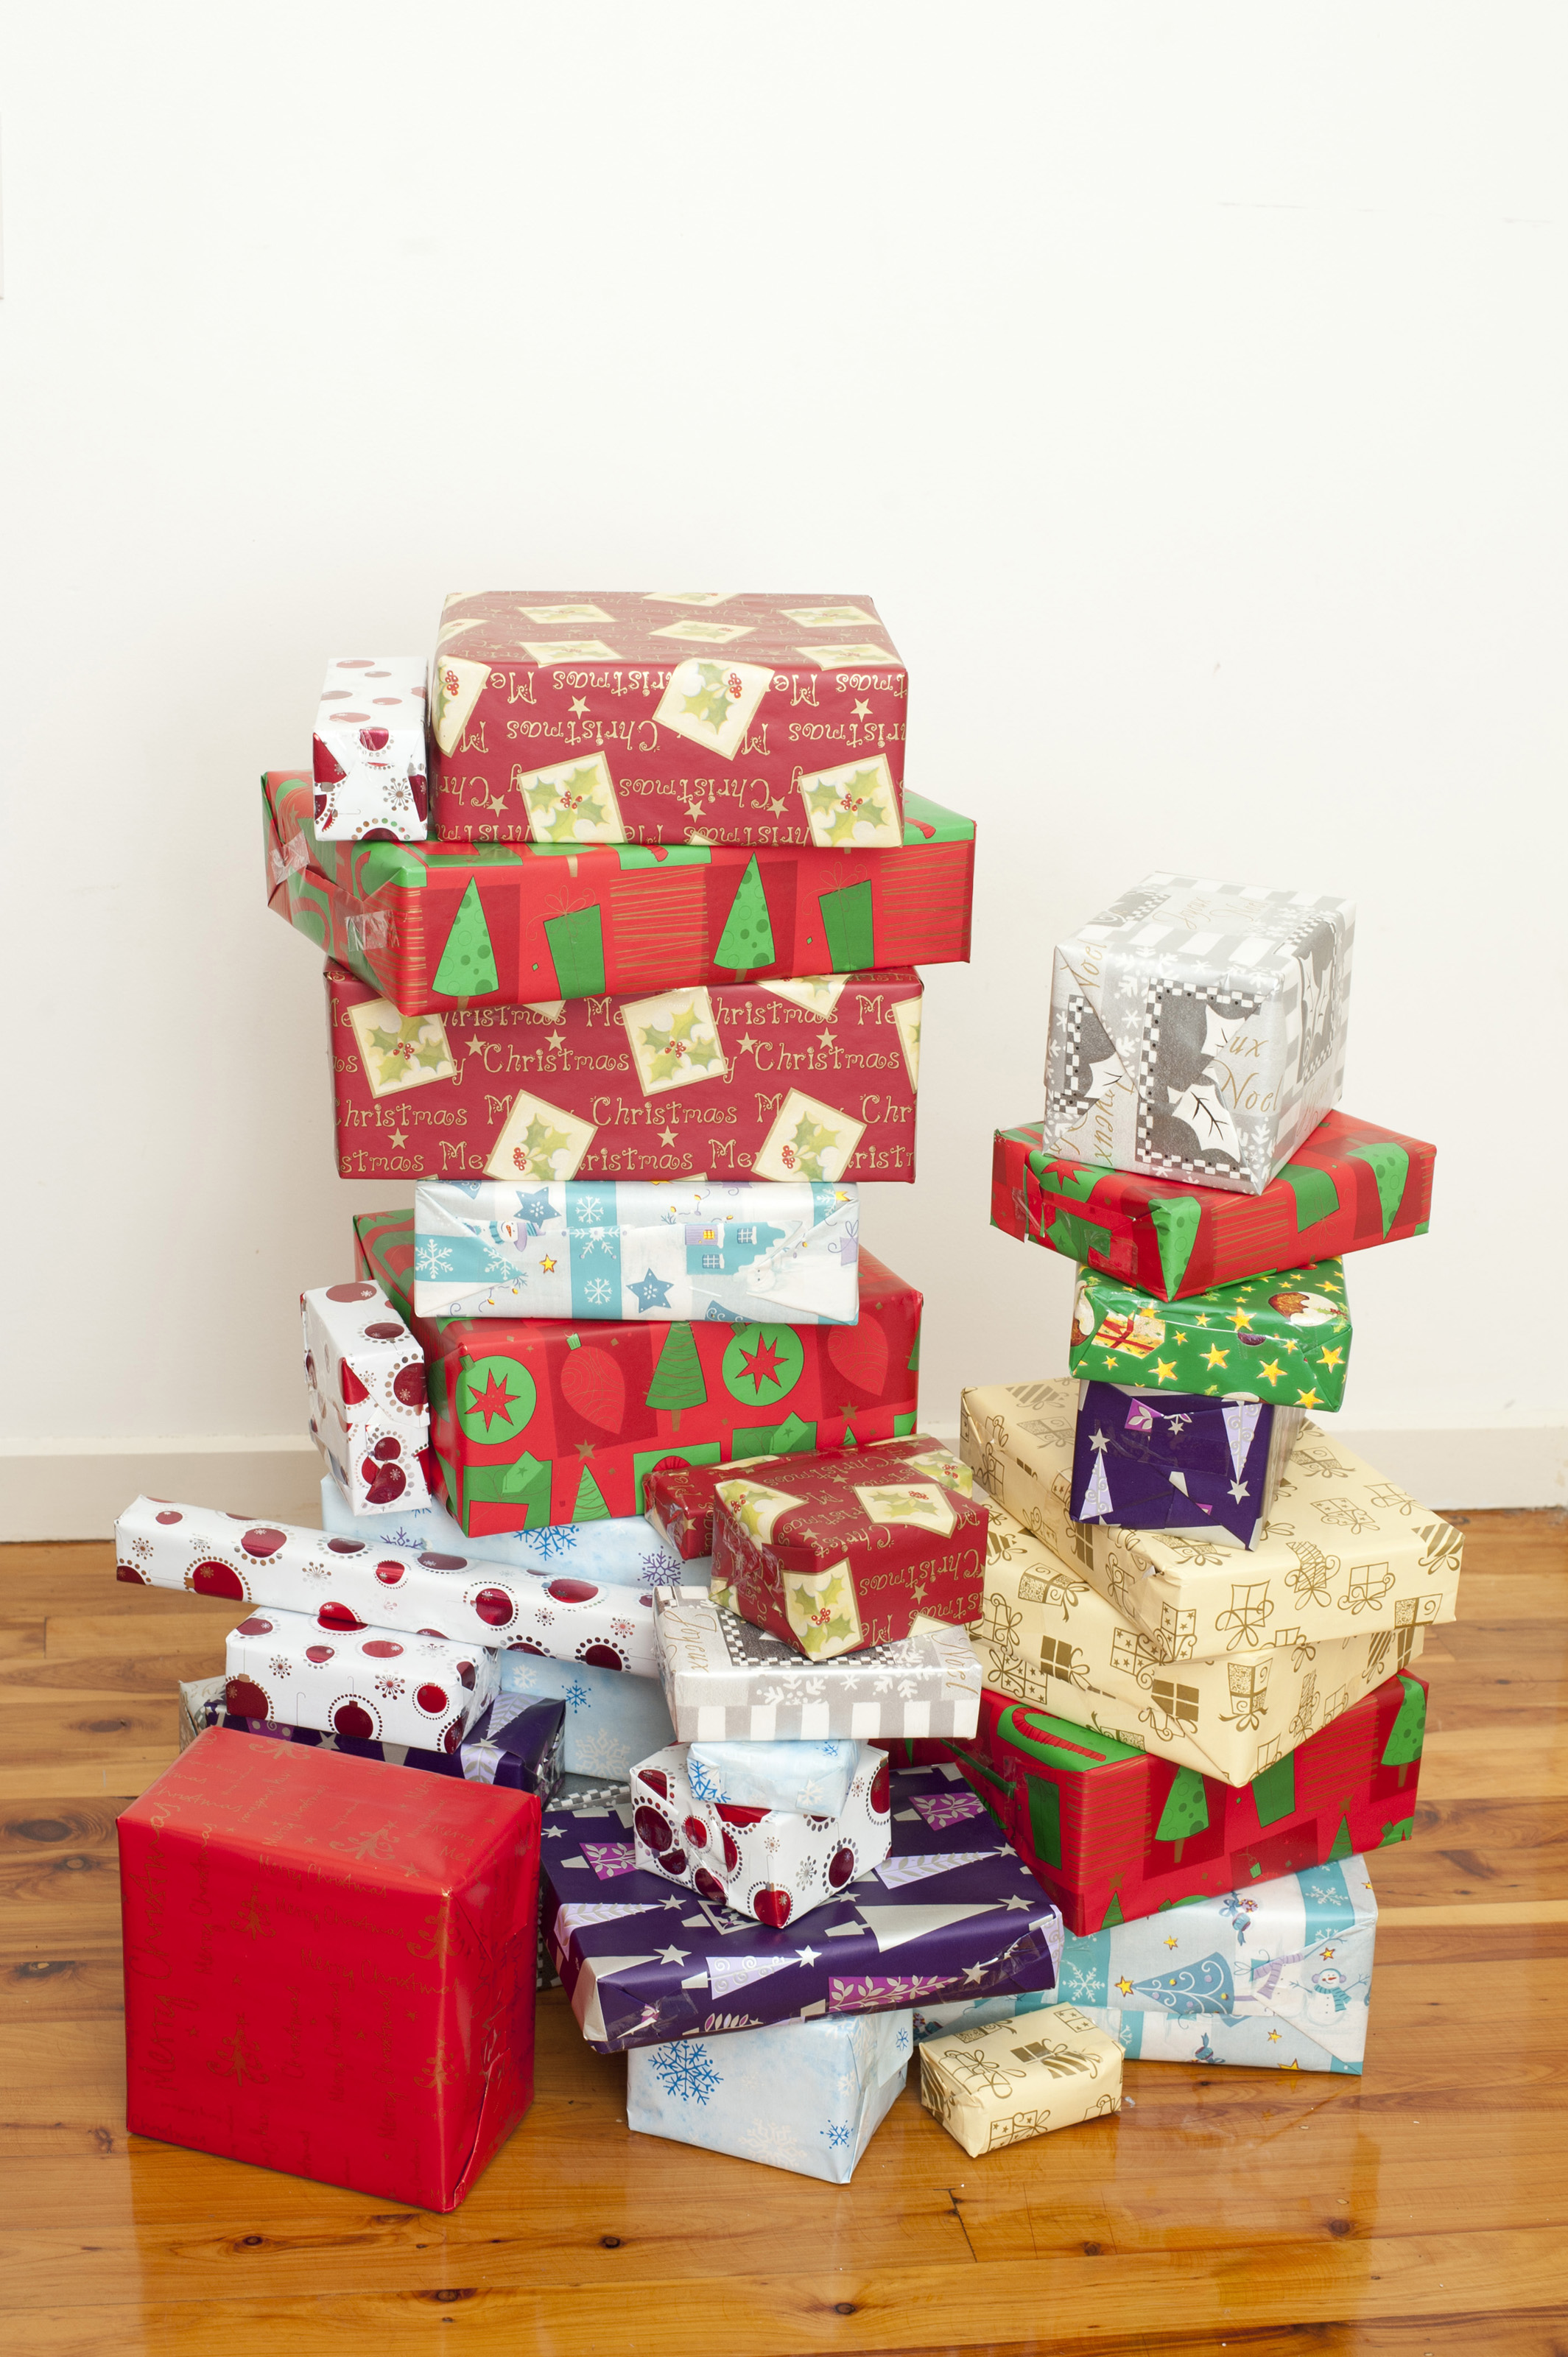 Free Stock Photo 8675 Pile of gift boxes wrapped in paper ...